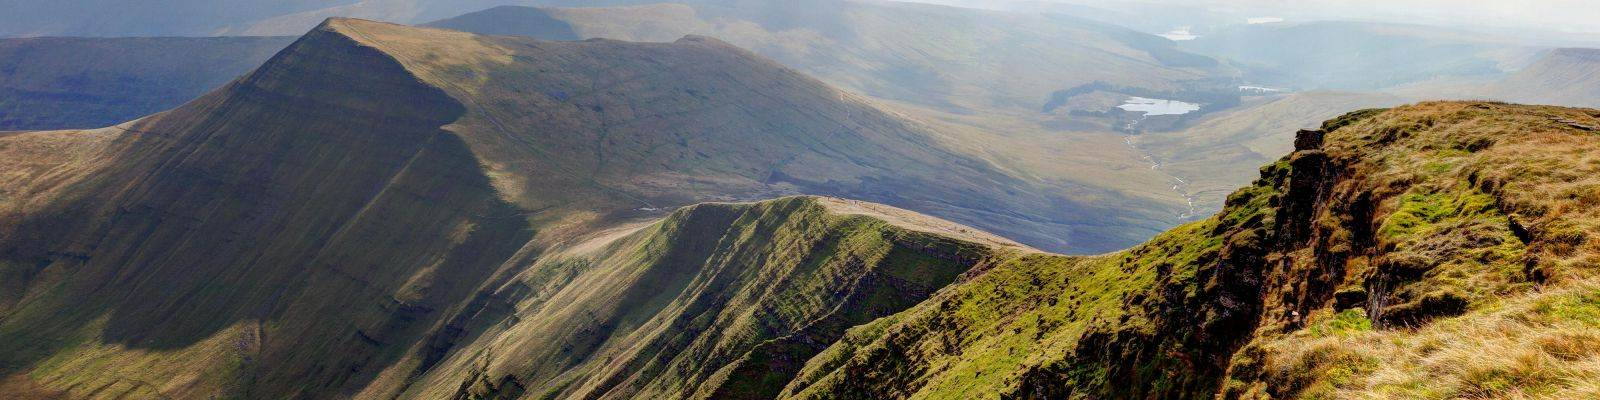 Holiday Cottages In The Brecon Beacons Self Catering